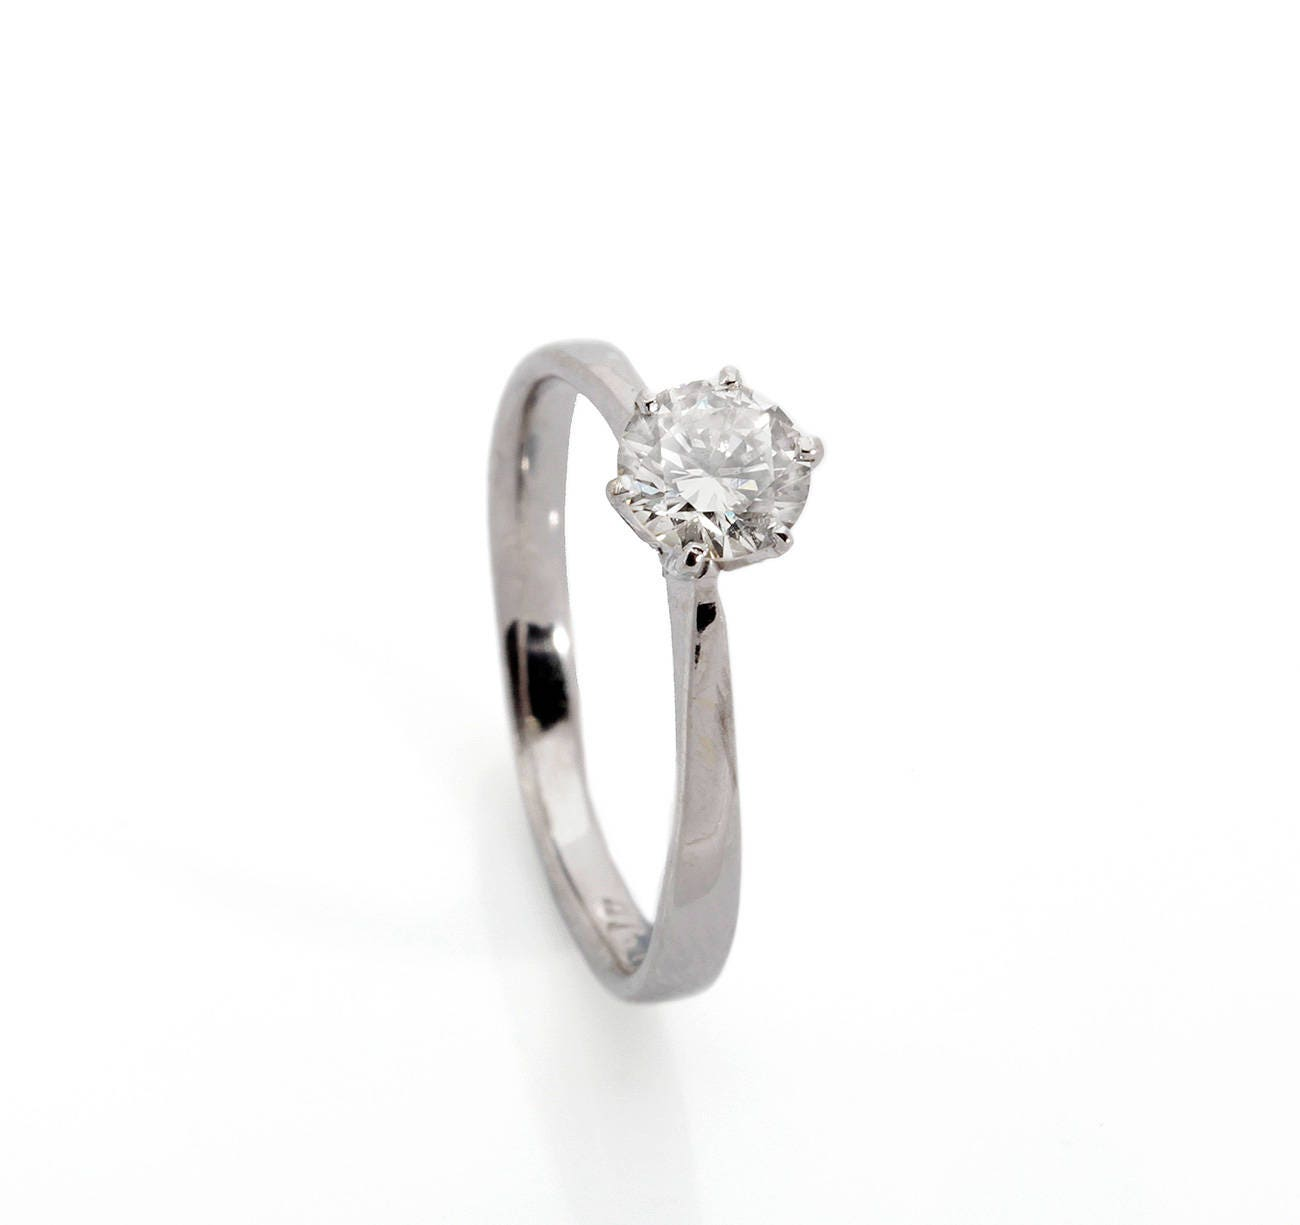 Solitaire ring-Diamond Engagement Ring-Solitaire diamond ring-14K White Gold-0.40 Carat - SevenCarat